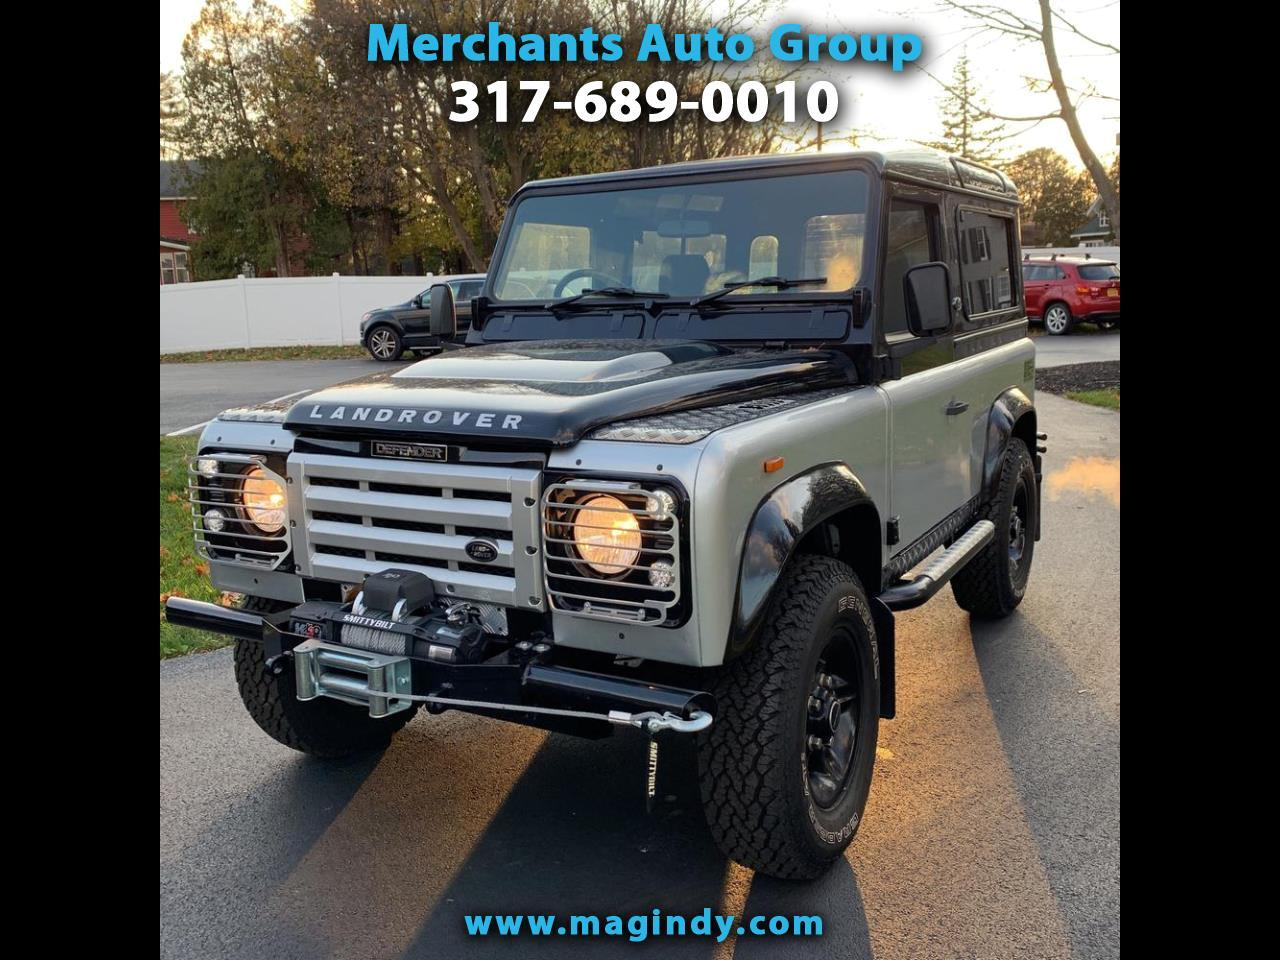 1989 Land Rover Defender 2-Door 4WD